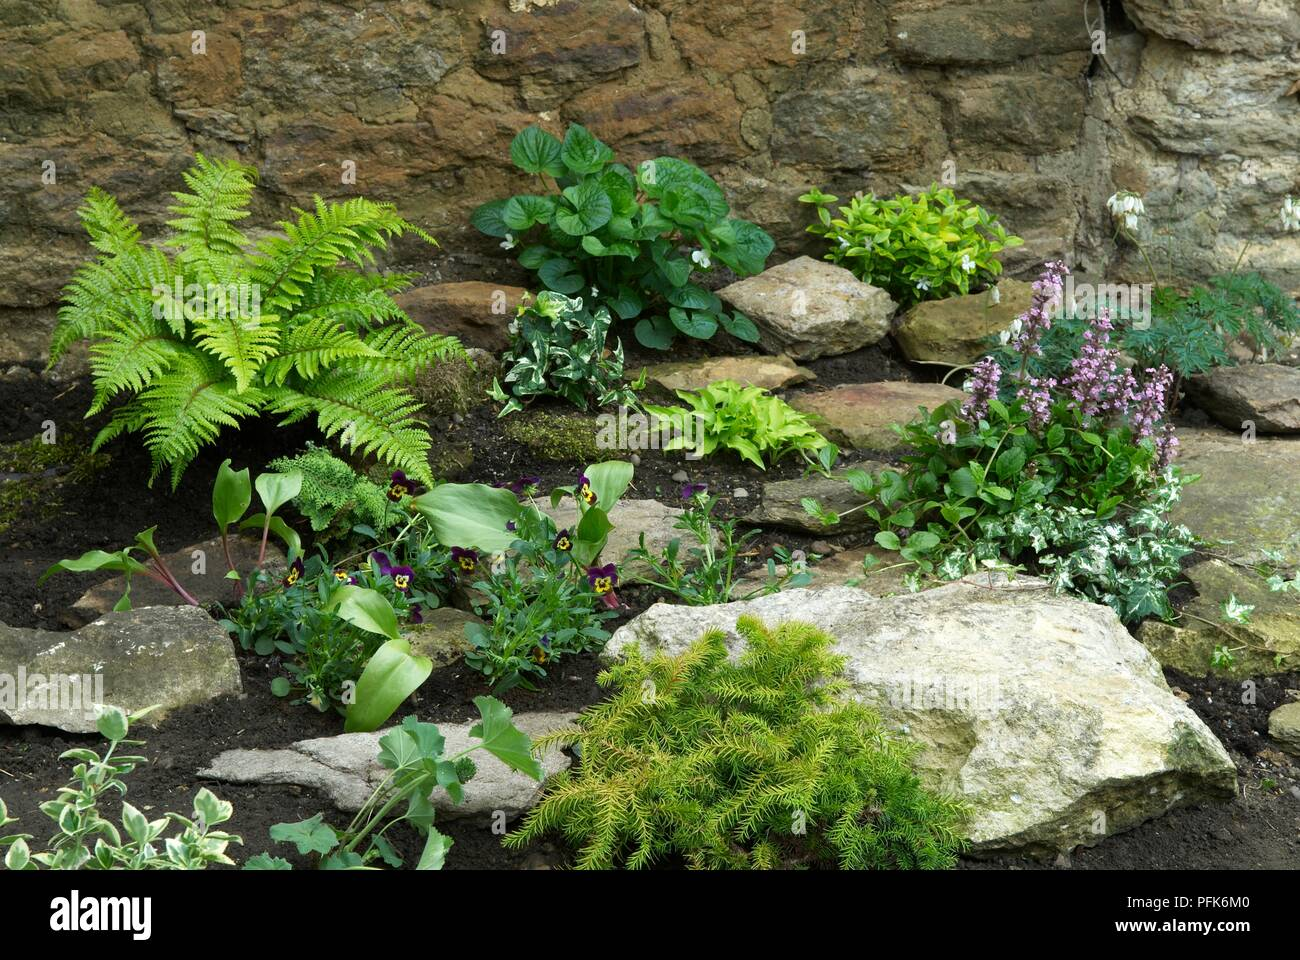 Rockery With Various Plants Including Fern Hosta Ivy Pansy